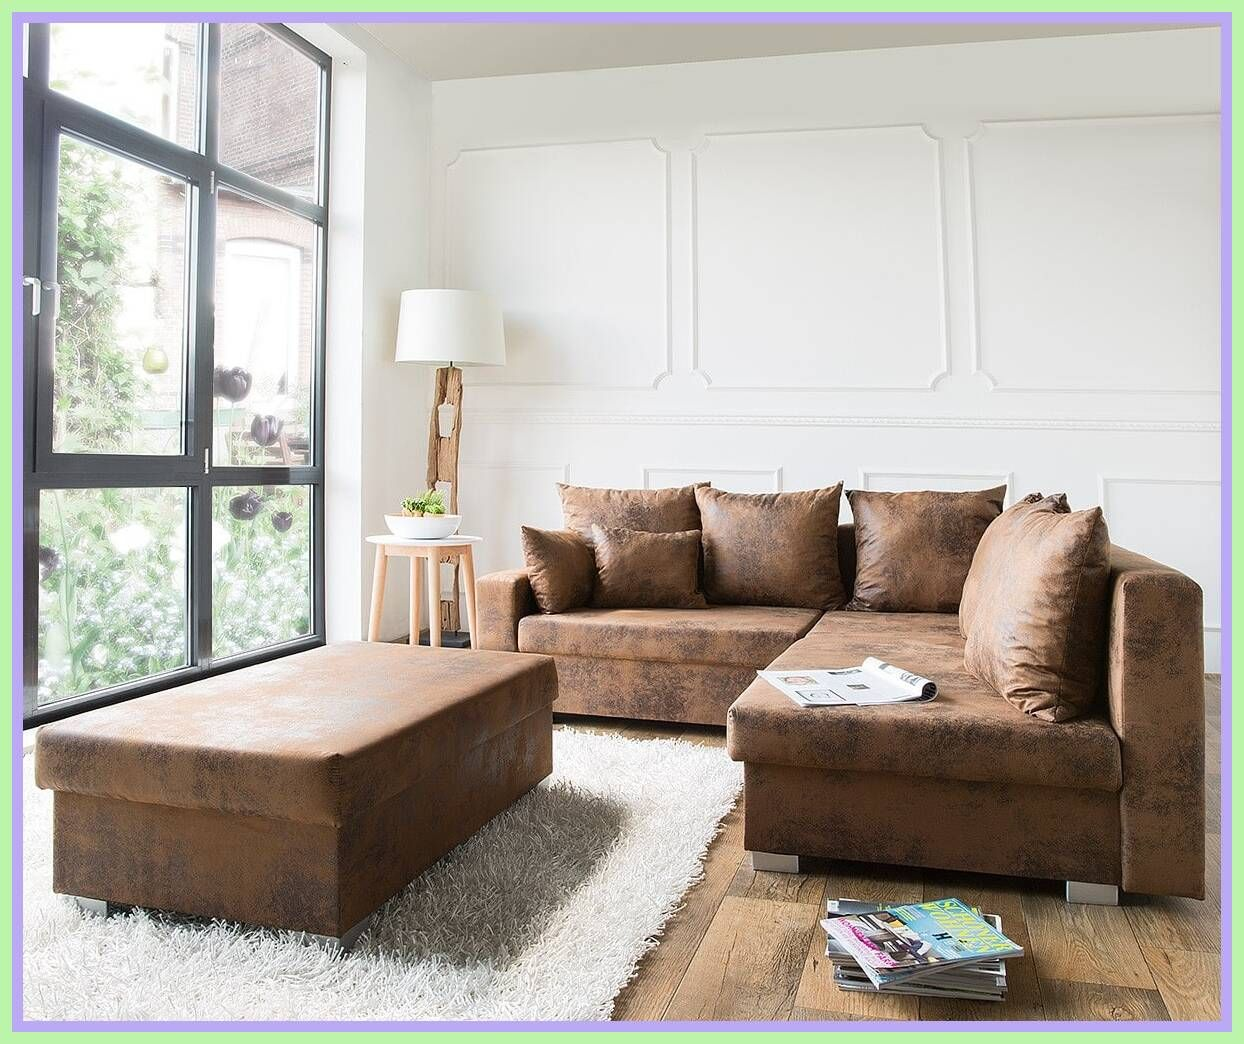 Couch Hocker Leder Grau Couch Hocker Leder Grau Please Click Link To Find More Reference Enjoy